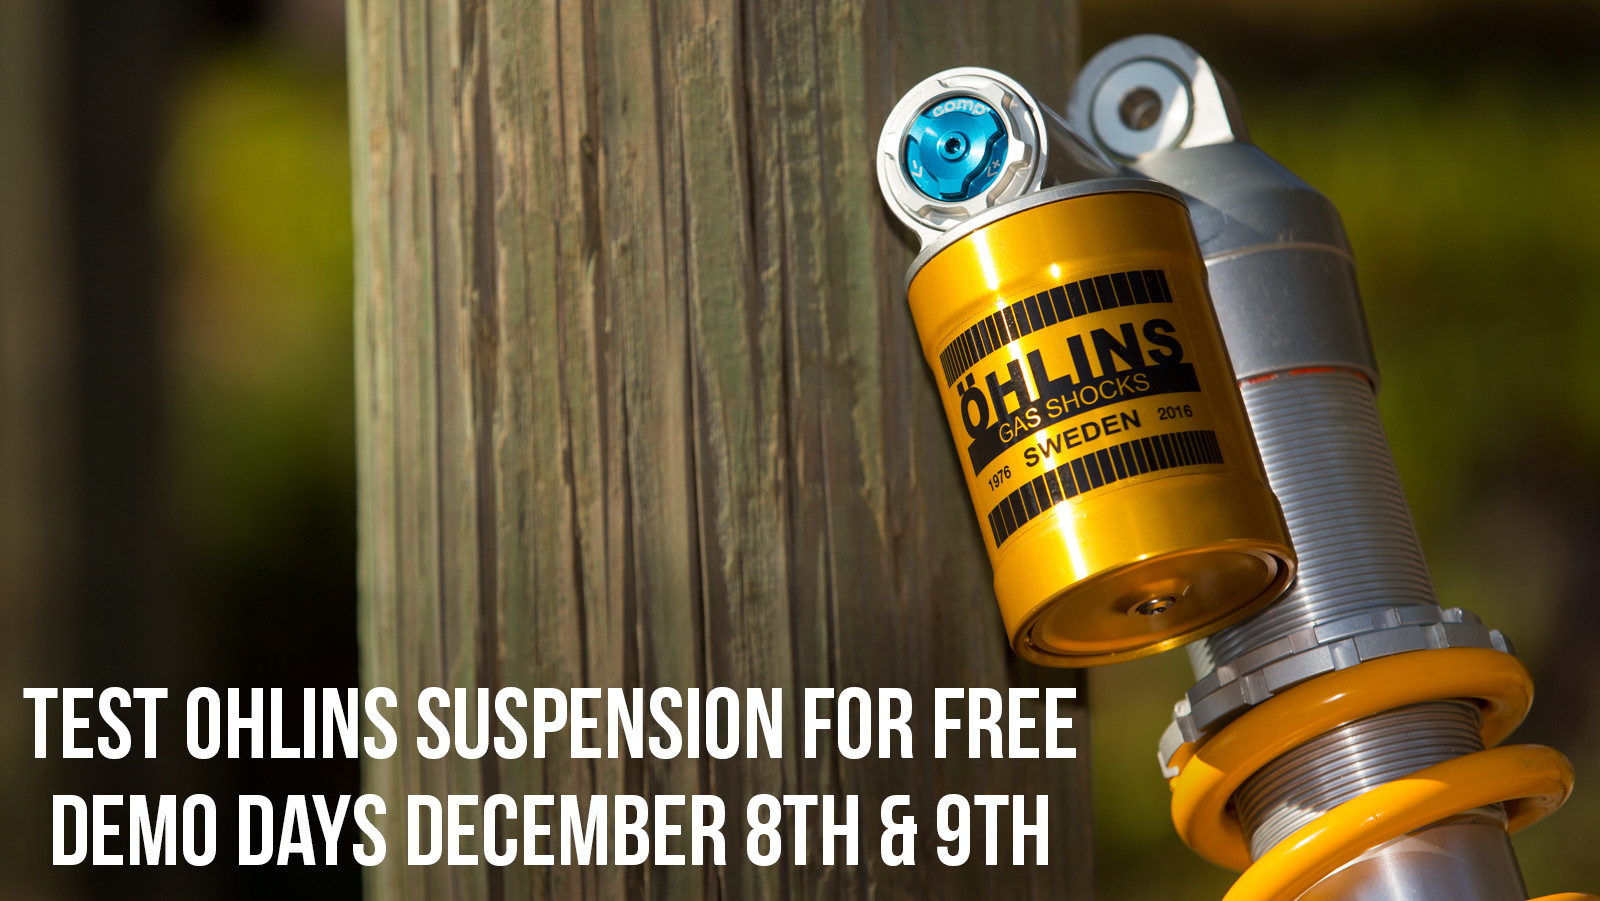 Try Ohlins Supsension for Free - December 8th & 9th